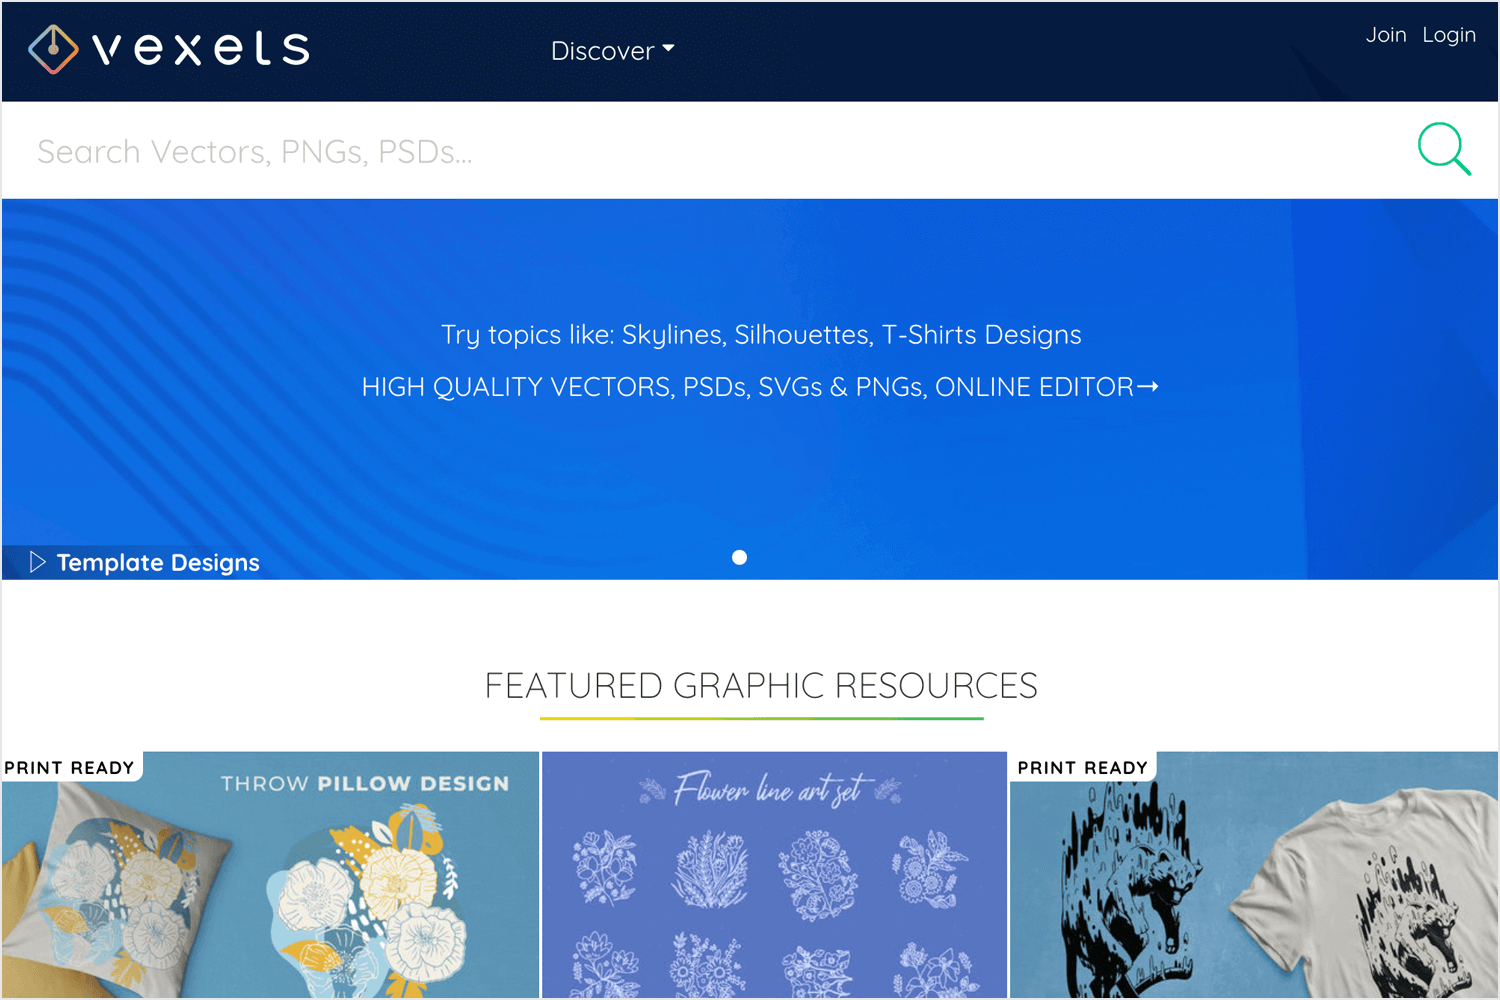 vexels as place for free images and illustrations